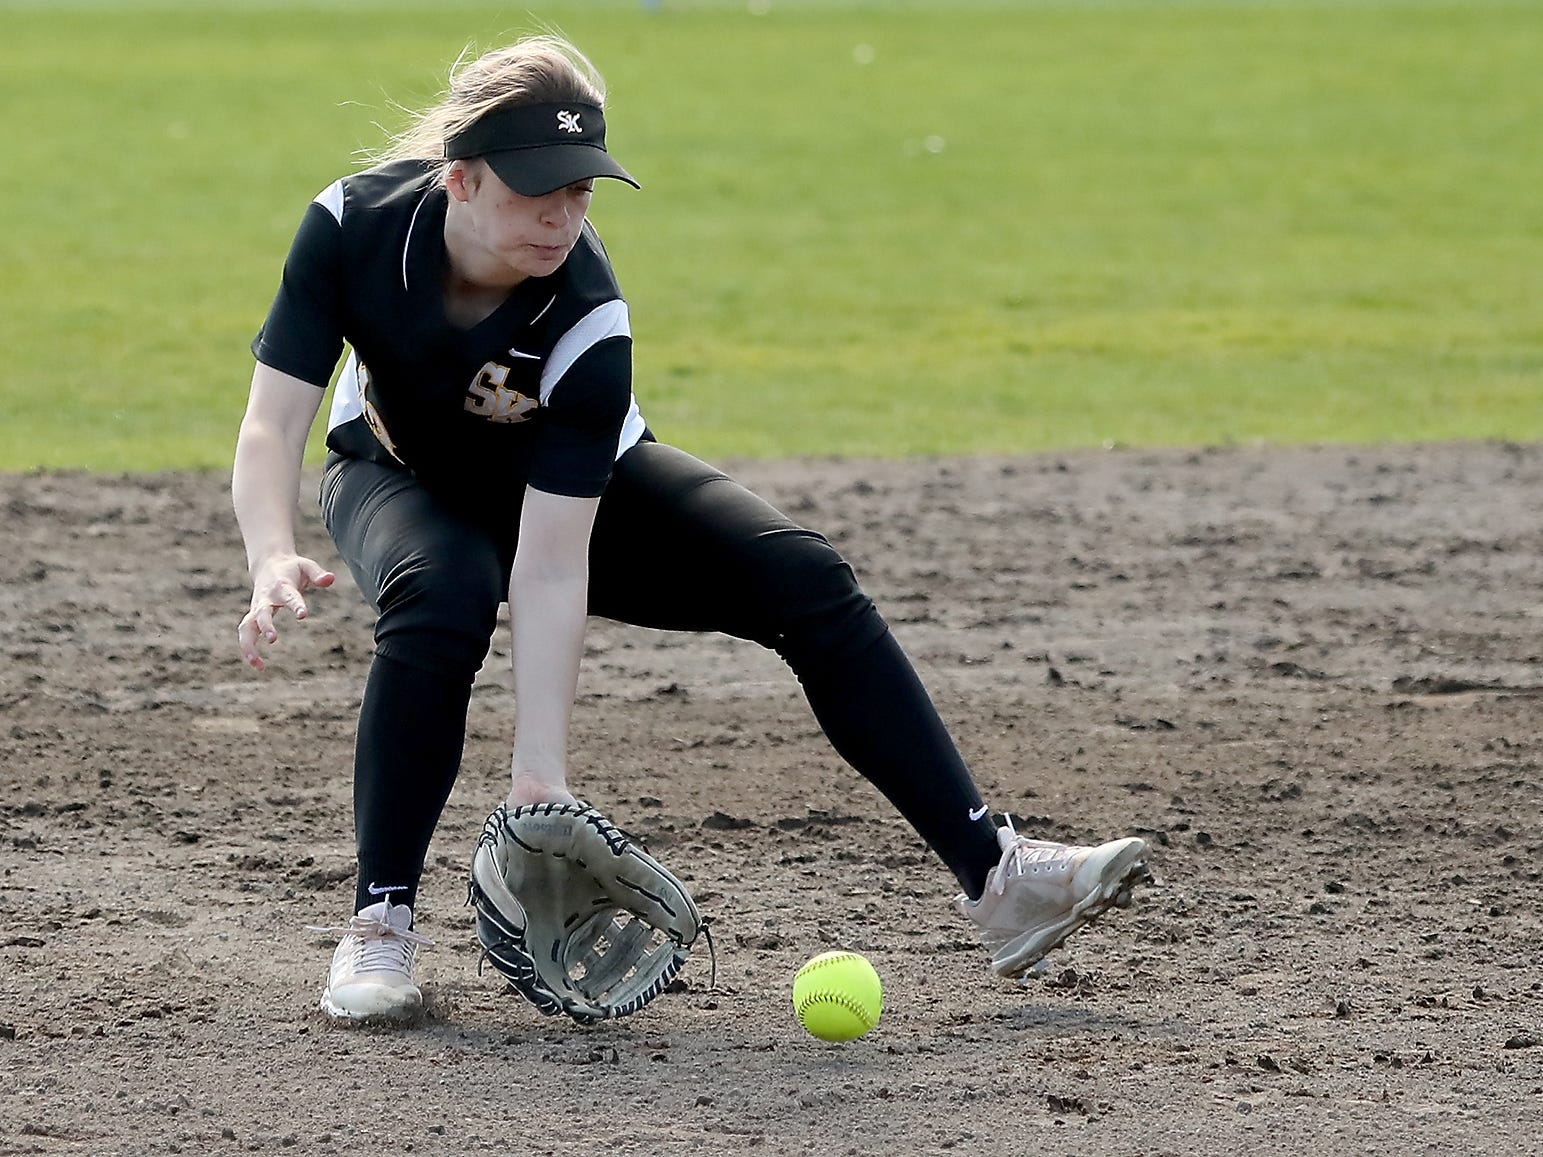 South Kitsap's Kaitlynn Johnston scoops up a ground ball against Puyallup on Tuesday, March 26, 2019.